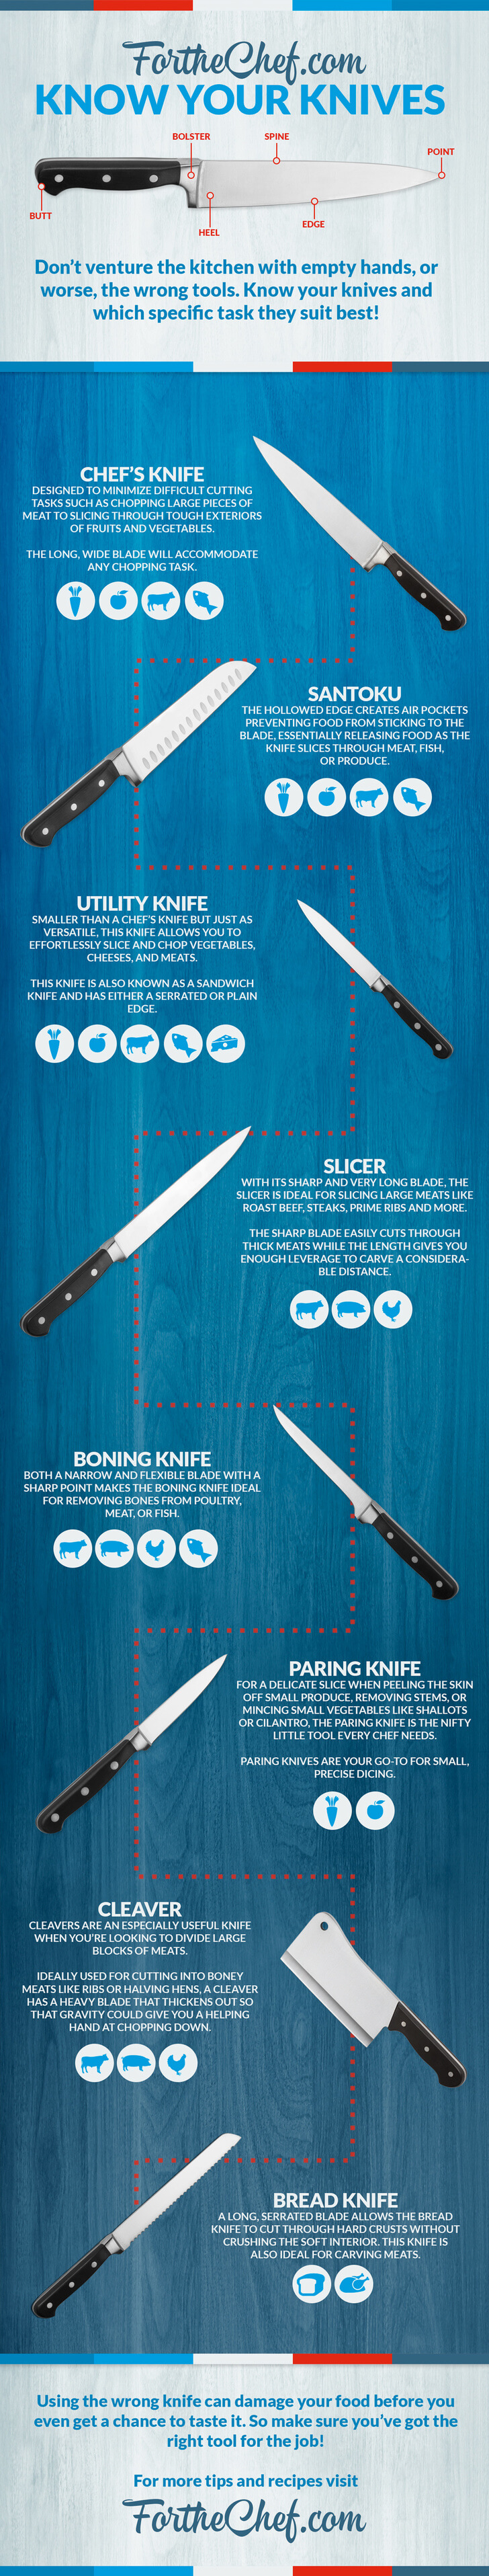 Know Your Knives A Guide to Kitchen Knives